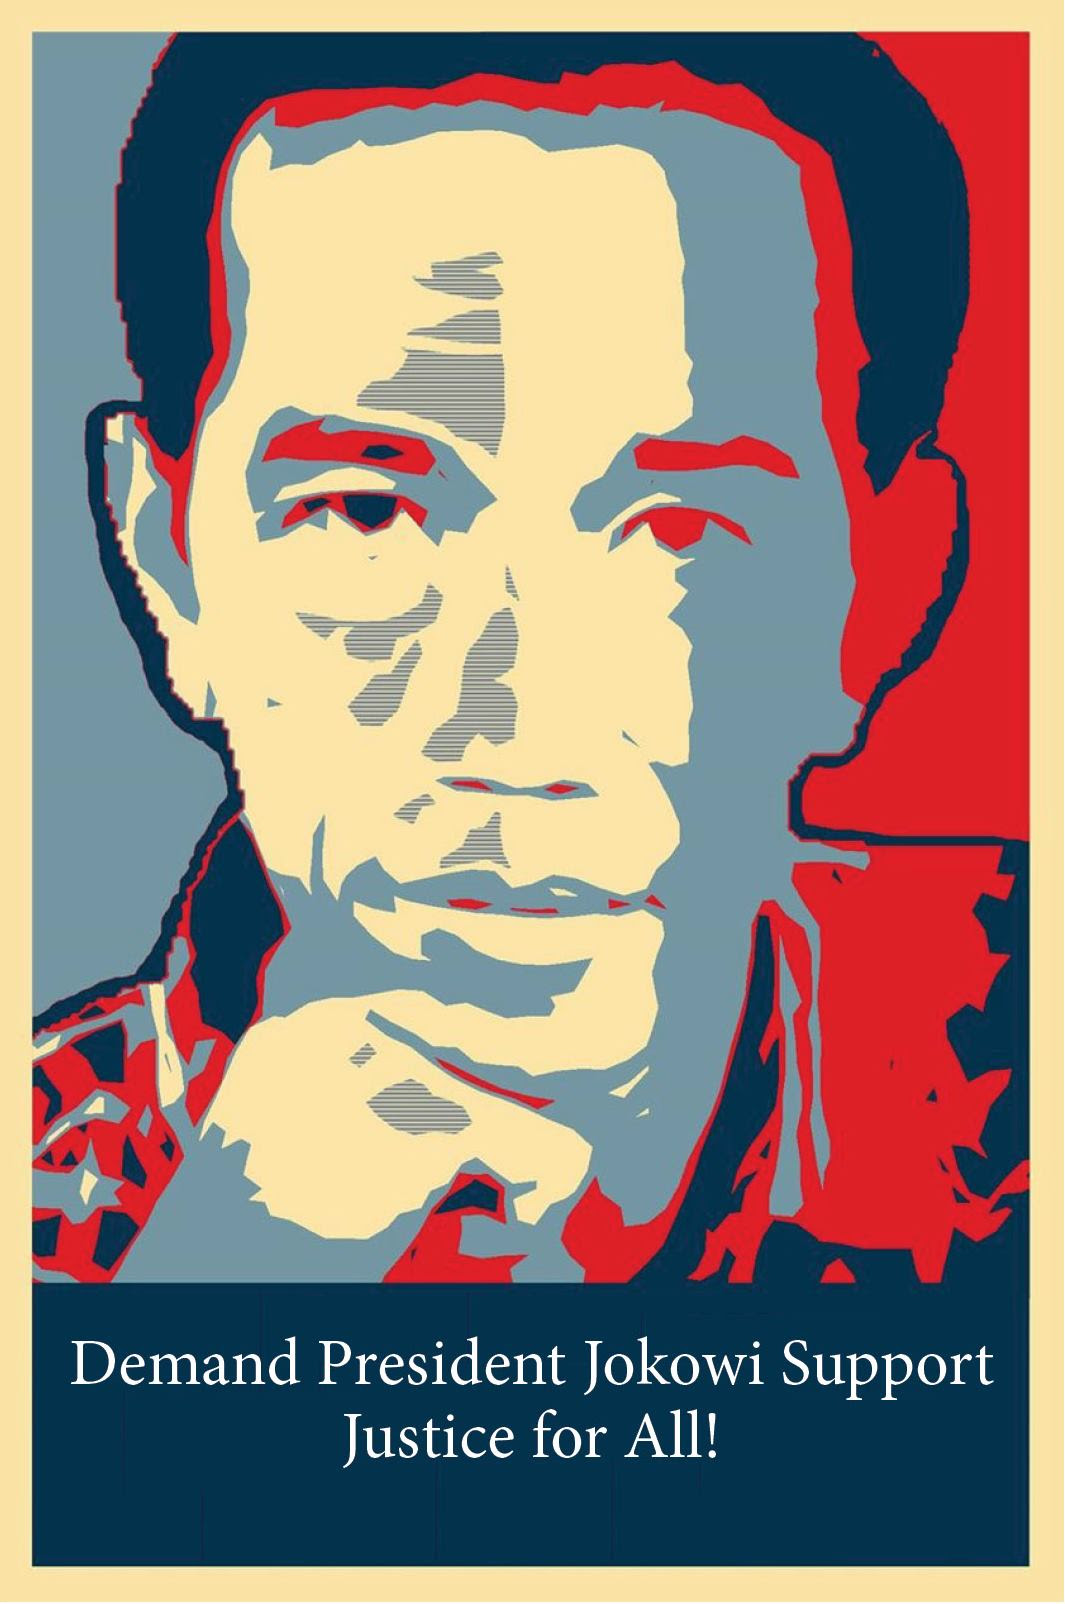 Demand Jokowi Support Justice for All